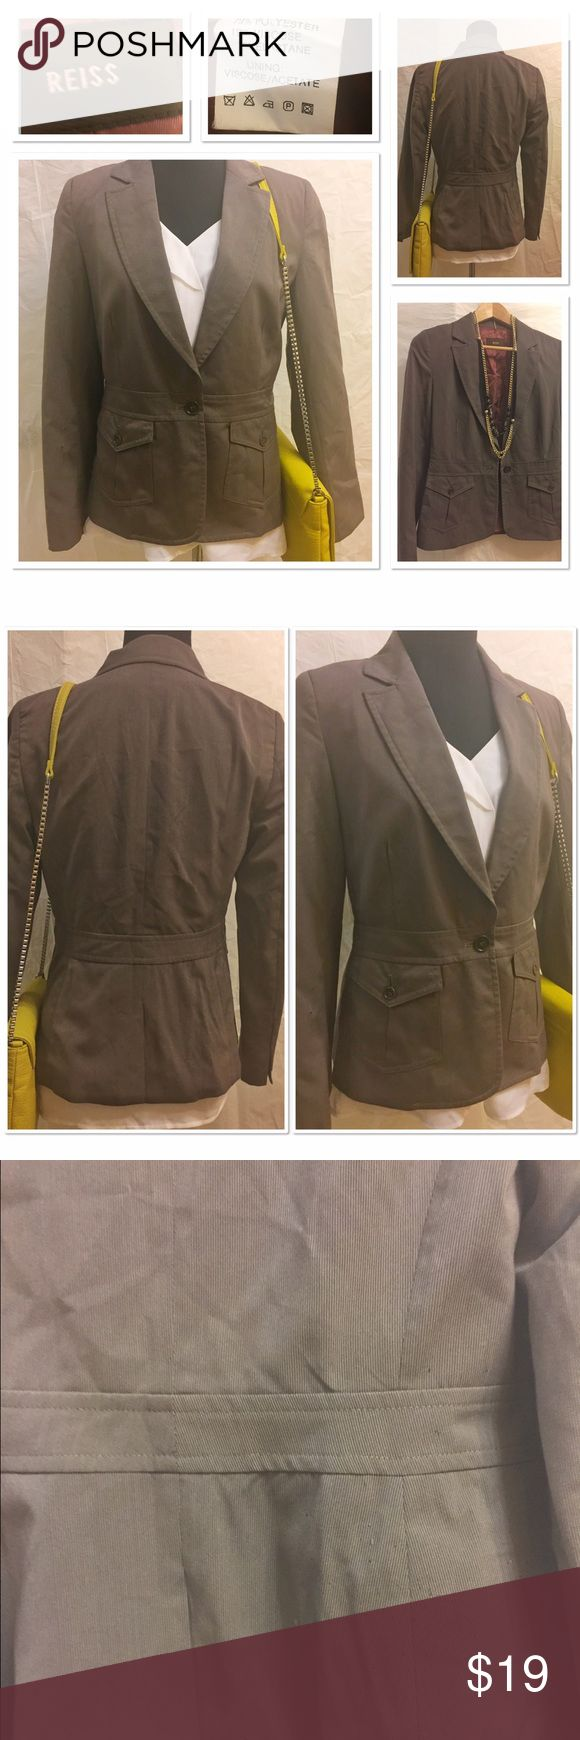 Reiss blazer size Small Reiss blazer size Small. Great condition. There is some signs of wear on the lower back part of the blazer as shown on third photo. Not very noticeable unless you look closely. My guess is it was caused by the shoulder bag. There is this one flow otherwise the jacket is in grey condition. However, you cannot go wrong with this price. Quality is excellent as usual. Reiss is definitely a high end brand. Reiss Jackets & Coats Blazers